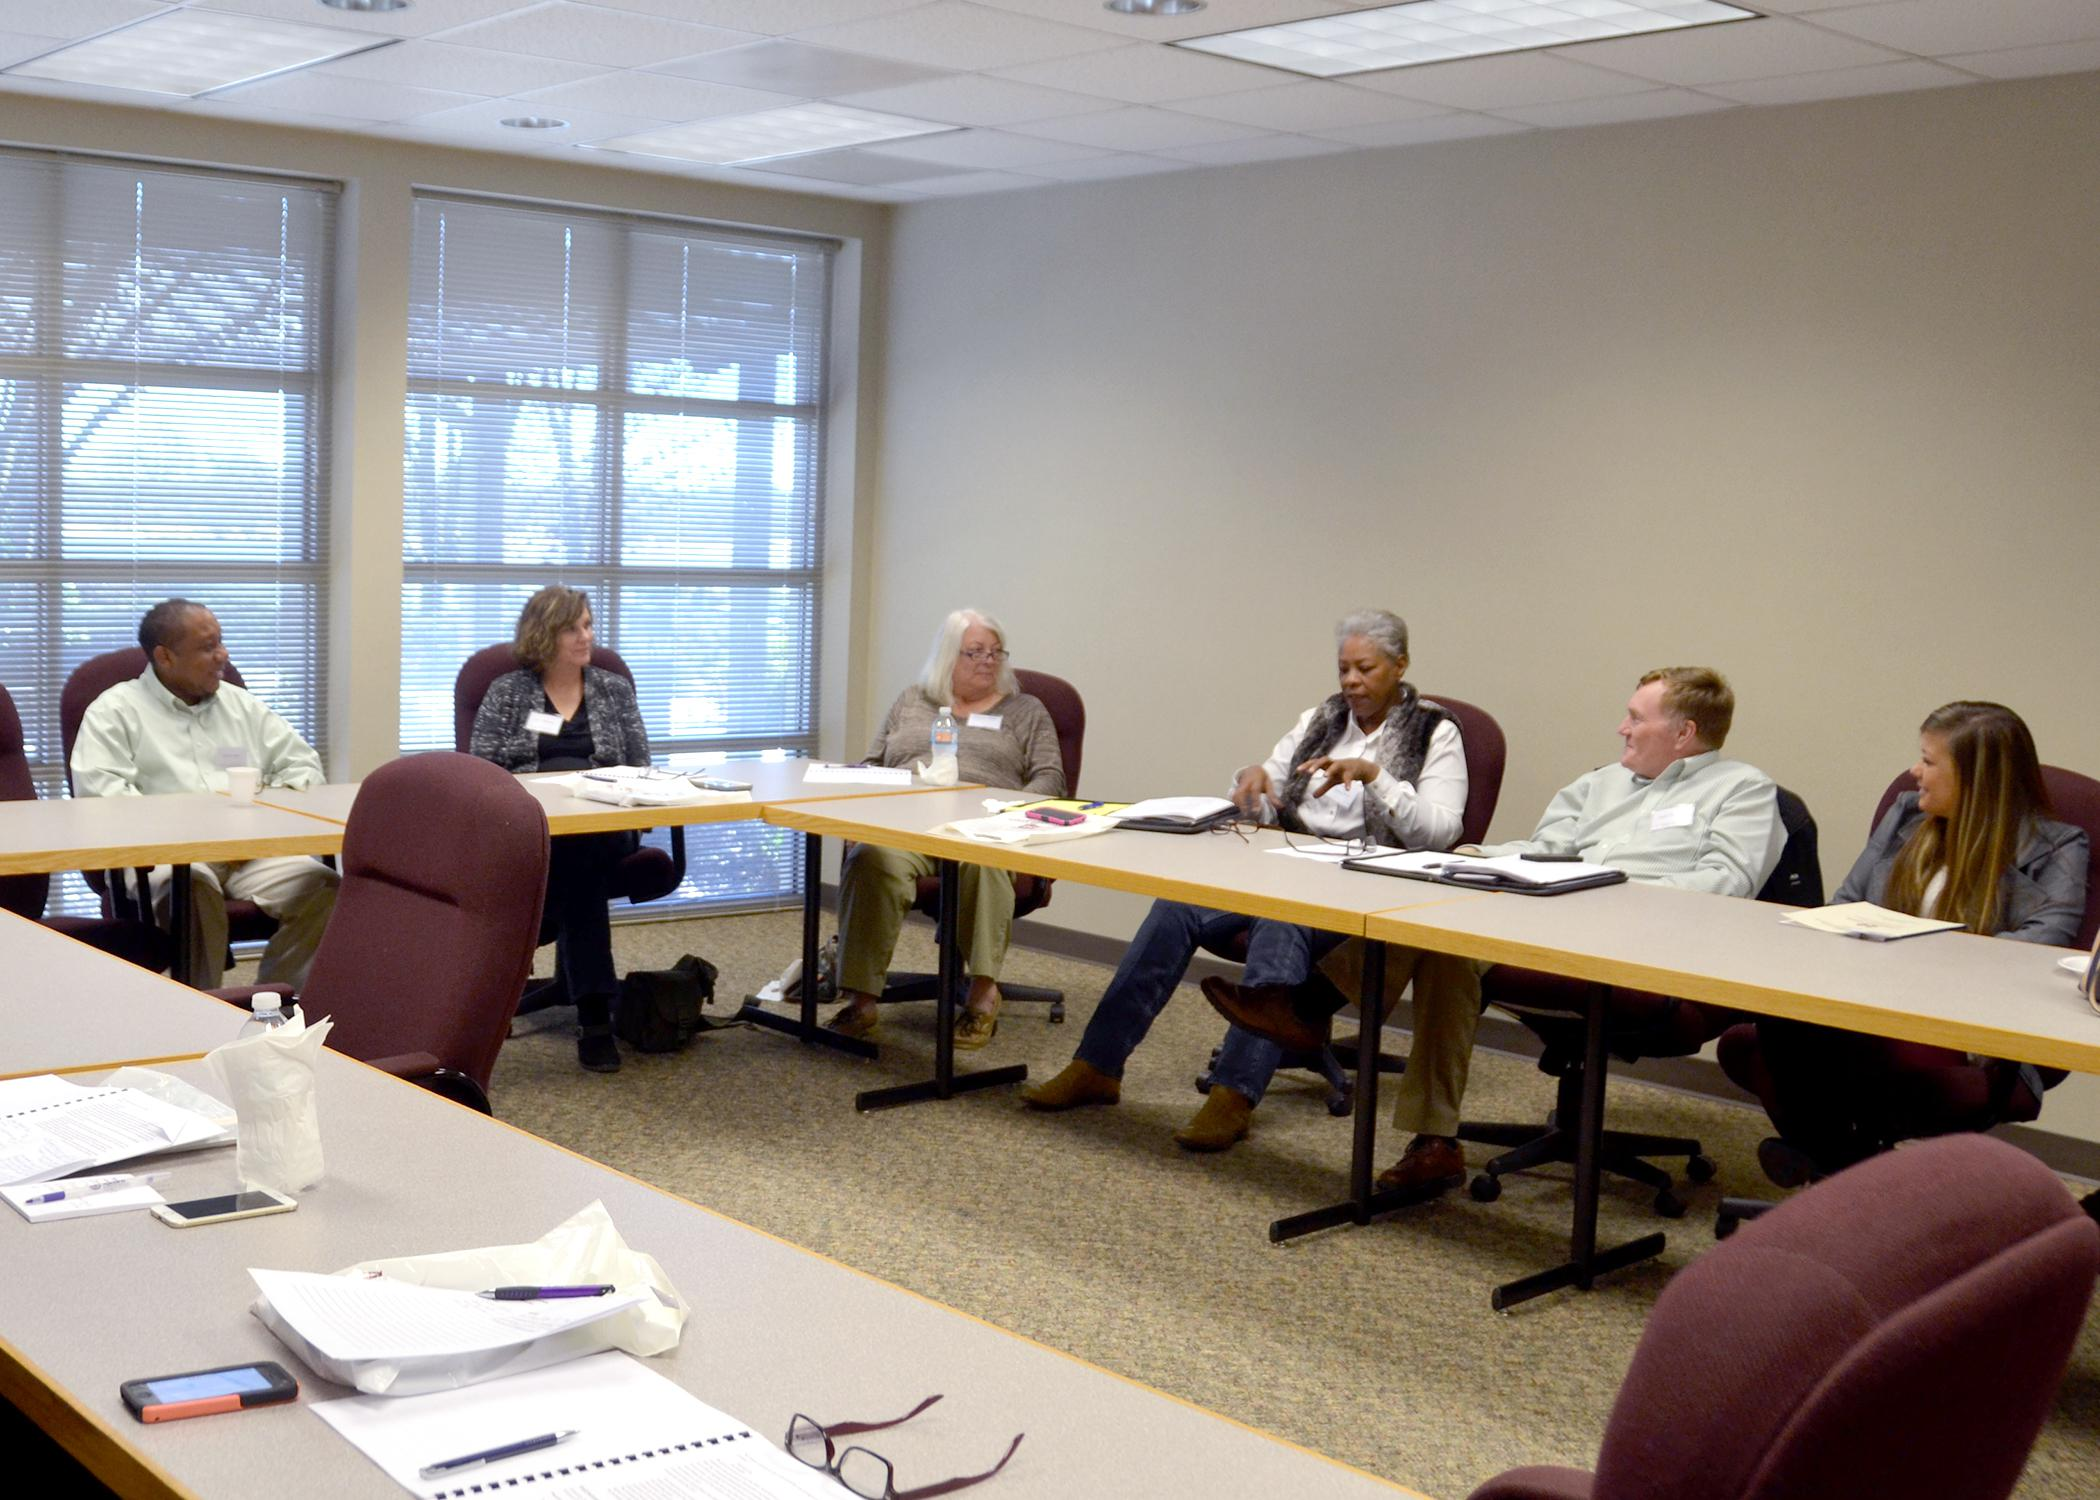 A group of small ruminant and swine producers gathered to discuss research and educational priorities during the Central Mississippi Producer Advisory Council meeting Feb. 16, 2016, in Raymond, Mississippi. The meeting brings area agricultural producers and industry leaders together with MSU personnel for the exchange of ideas and concerns. (Photo by MSU Extension Service/Susan Collins-Smith)